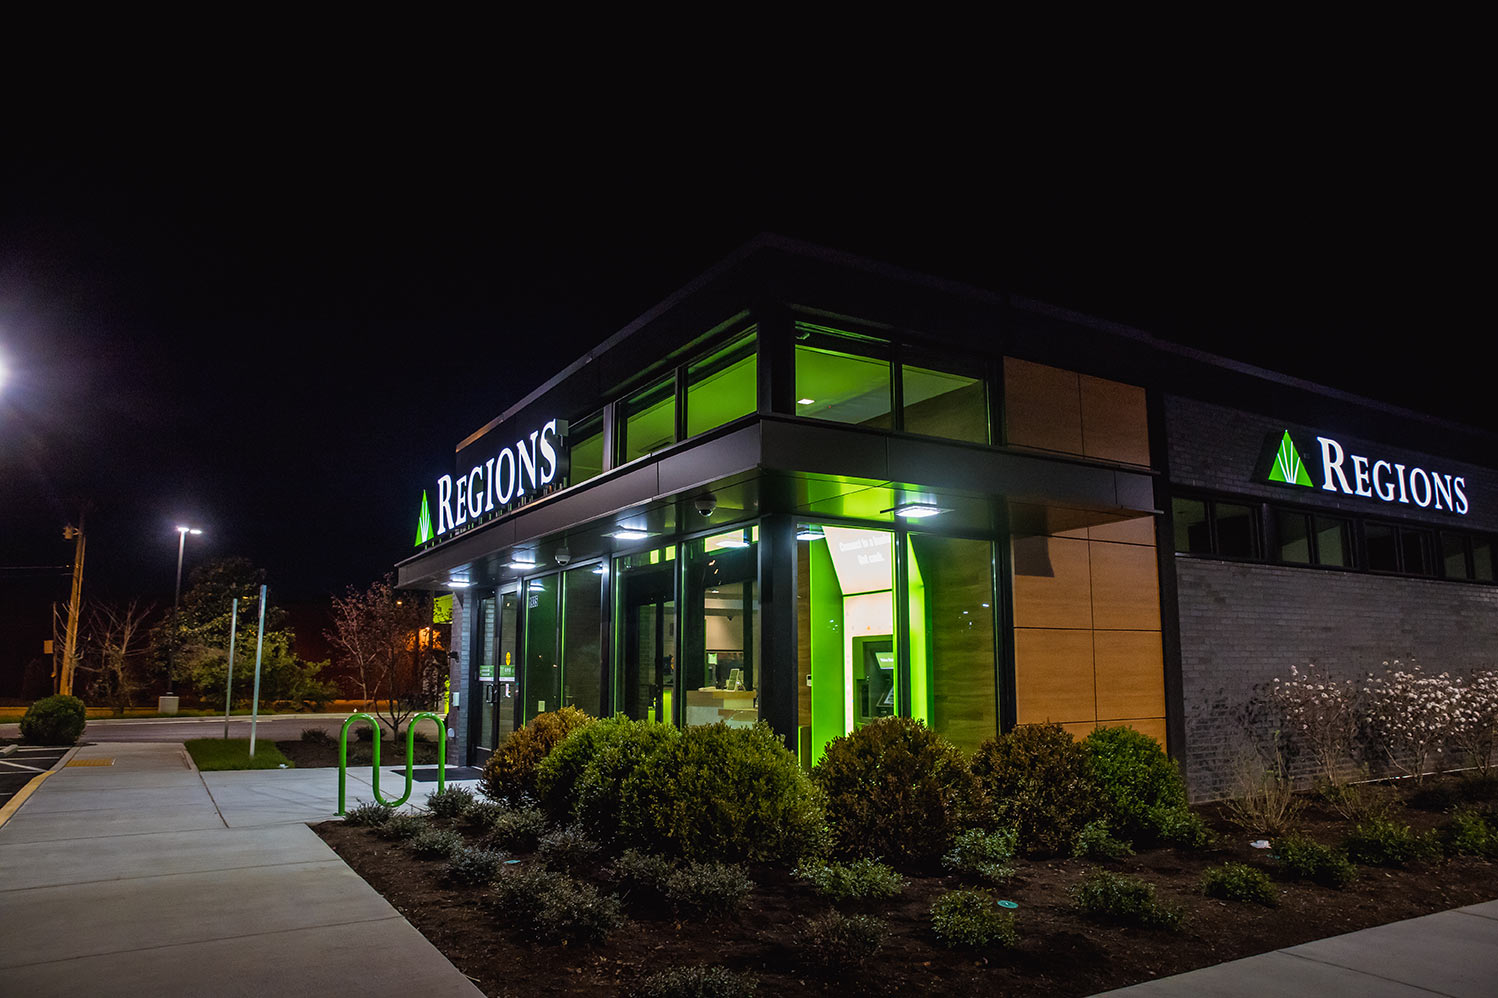 regions-new-build-psco-exterior-signage-night-illuminated-2